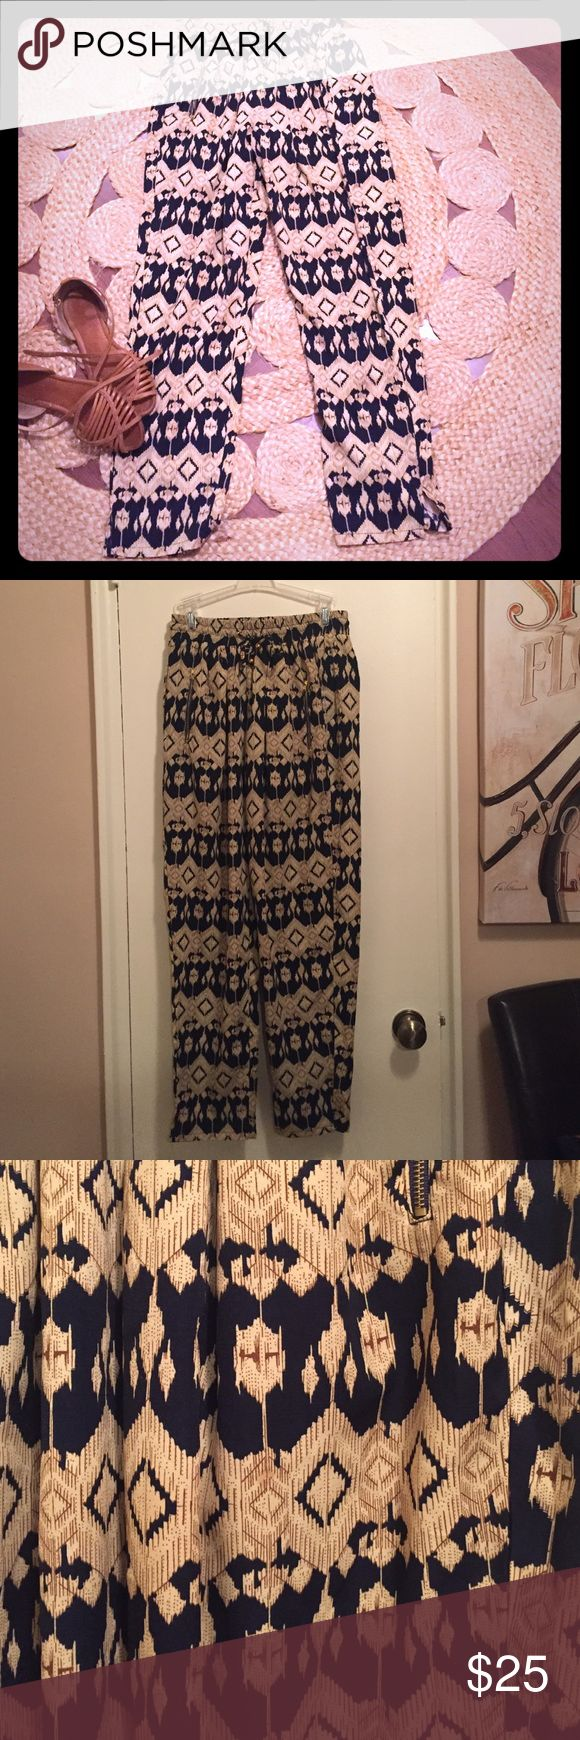 Tribal Print Pants Beautiful Black and Tan tribal print pant. Elastic waistline with drawstring. Zippered side slit pockets. Tapers towards the ankle. Worn once. Like new. Pants